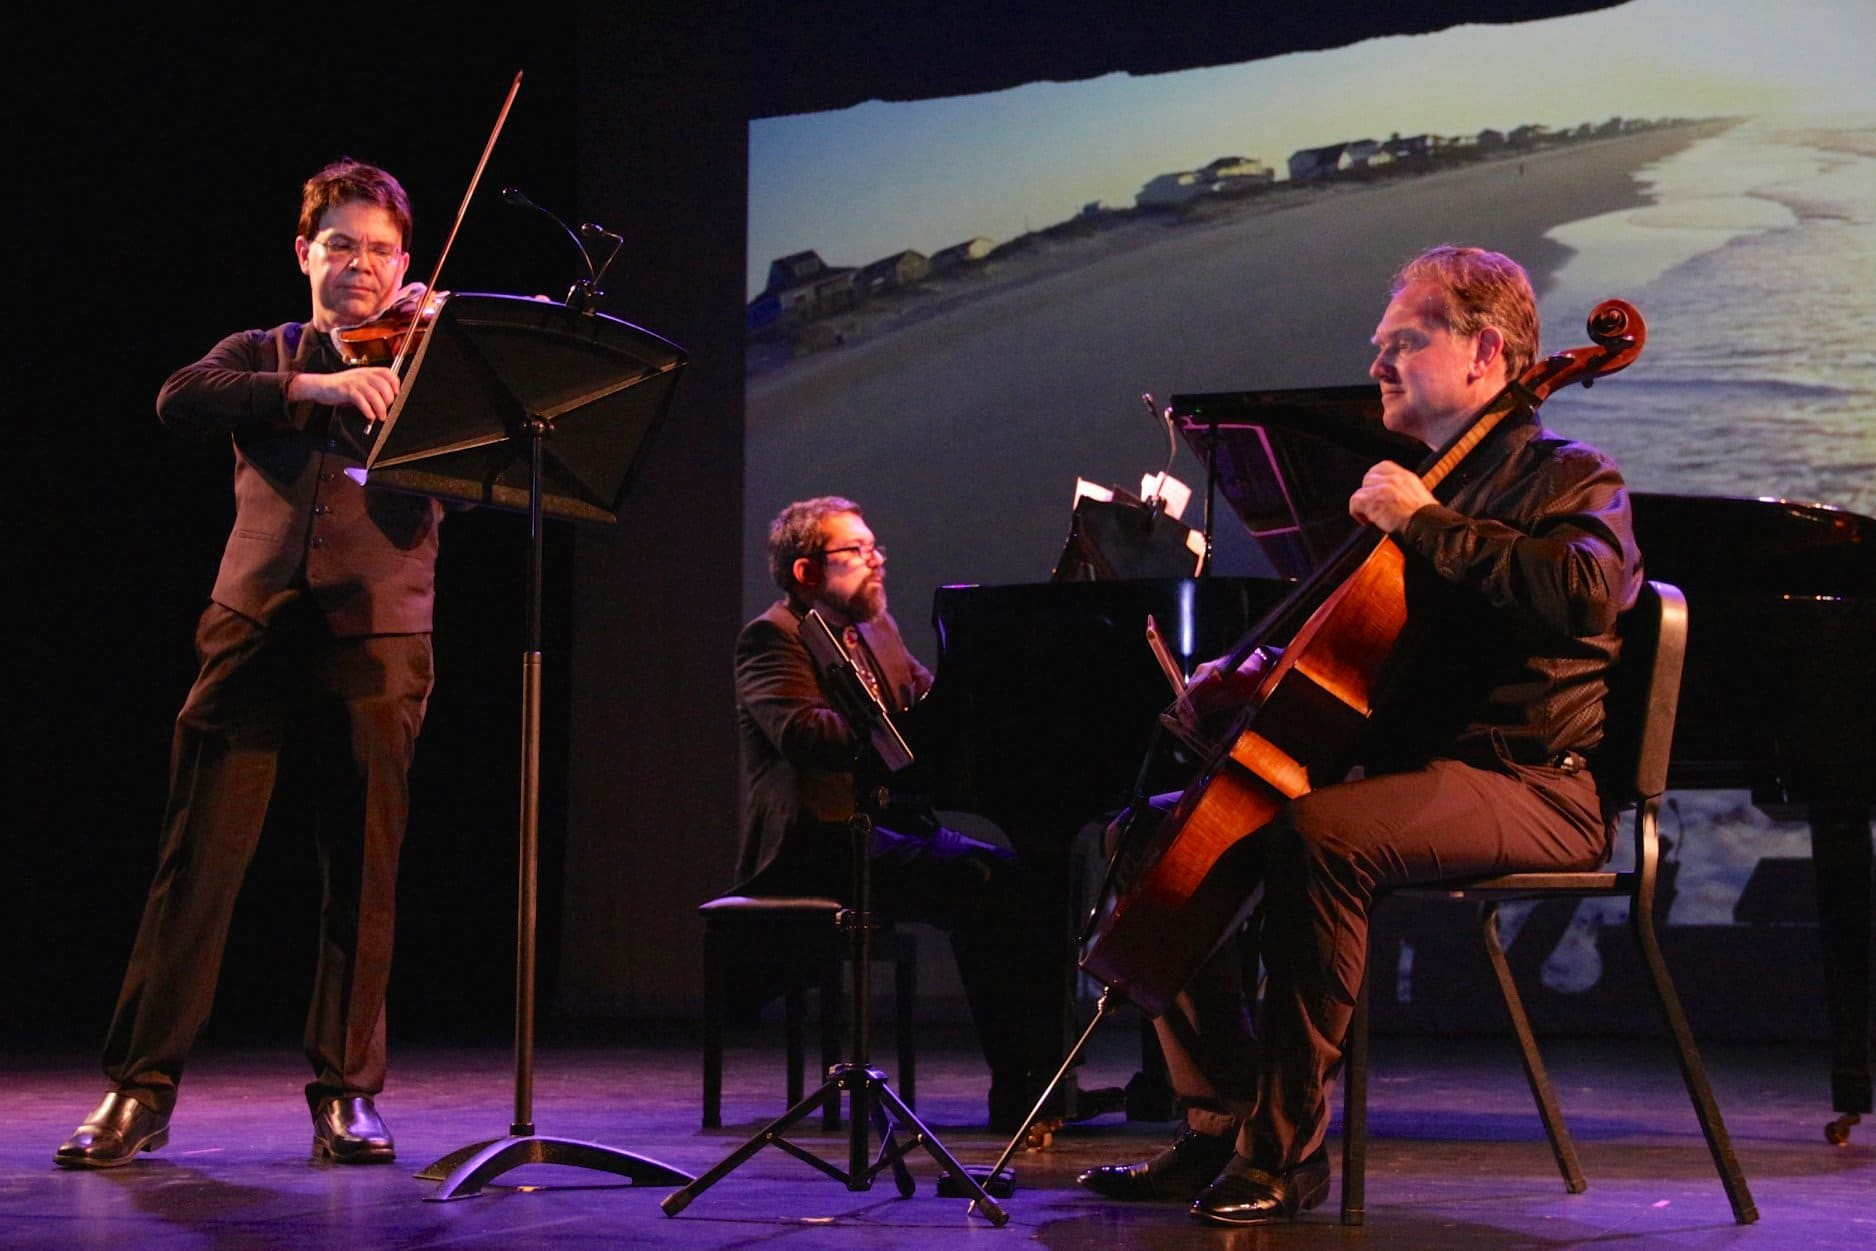 Seven months out with a broken hand, a violinist is back with a world premiere